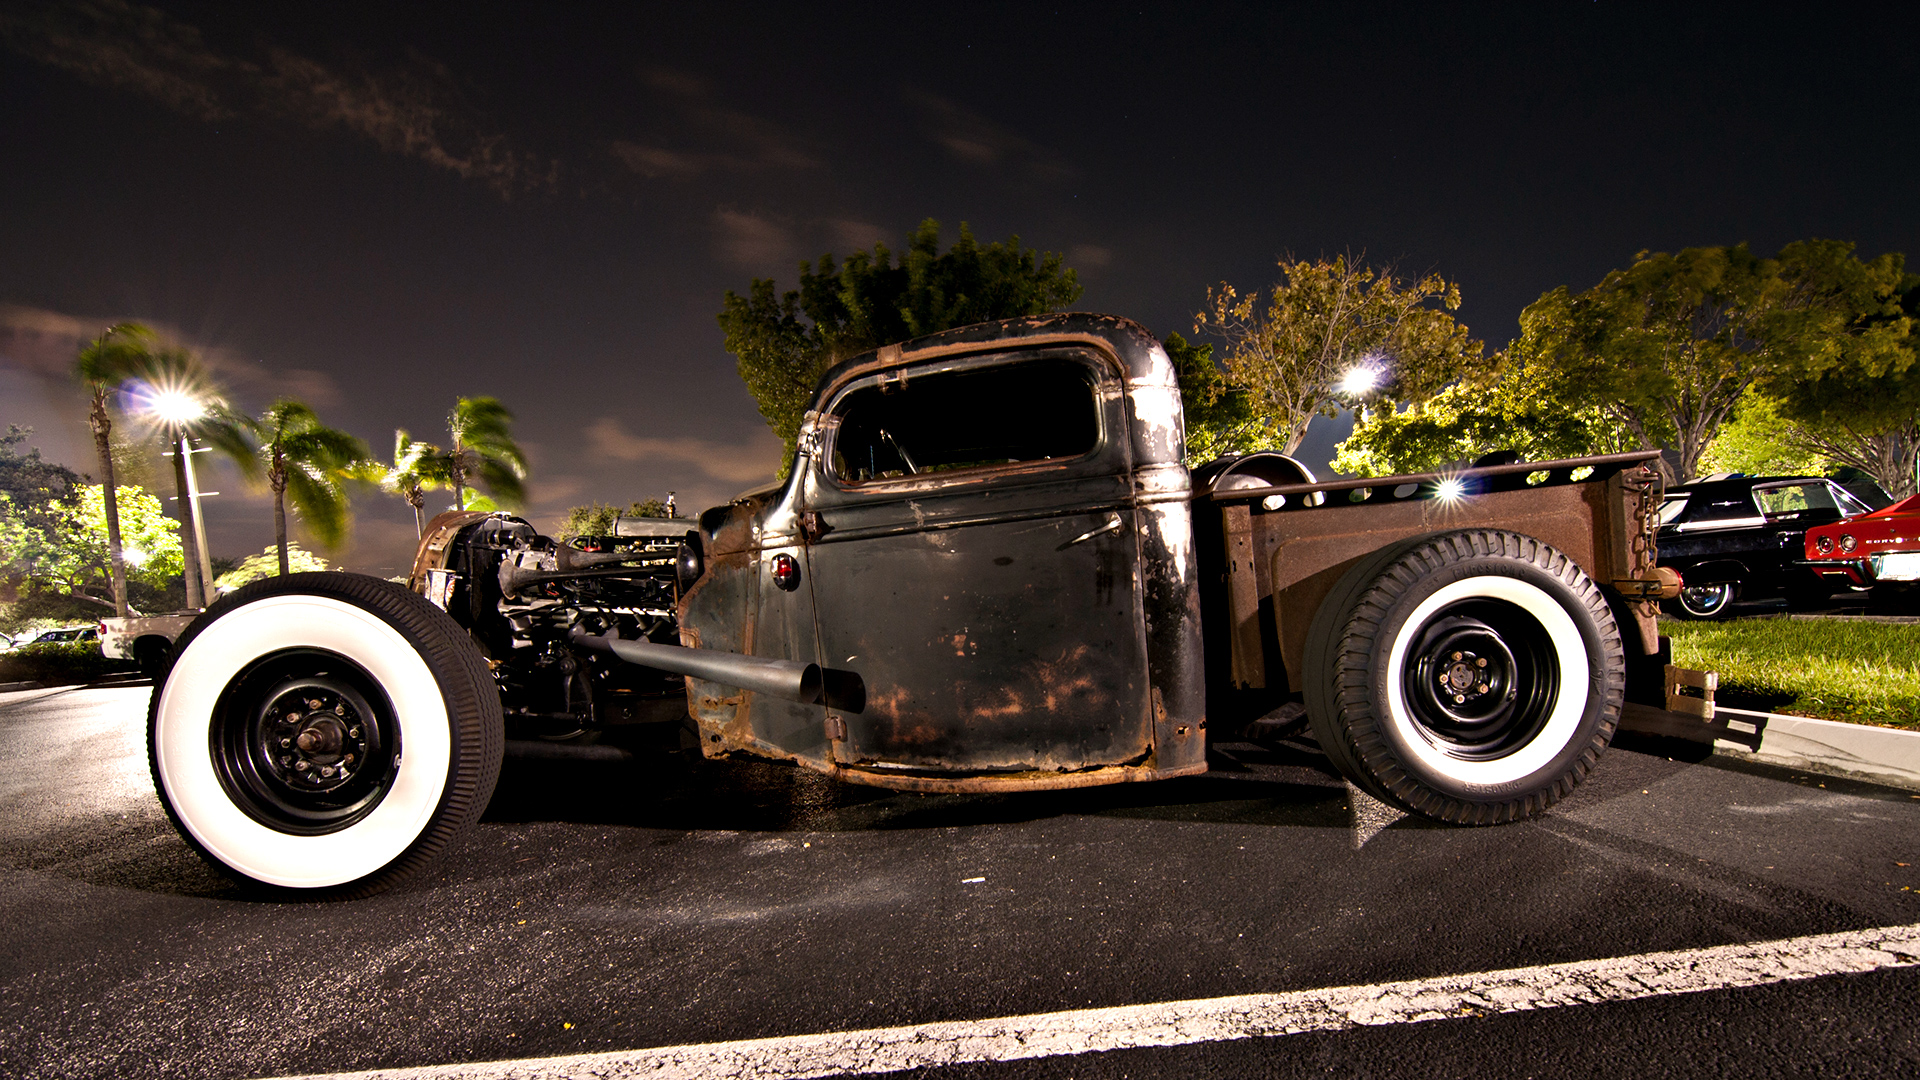 Hot Rod by cool cars wallpaper Automotive Concept 1920x1080